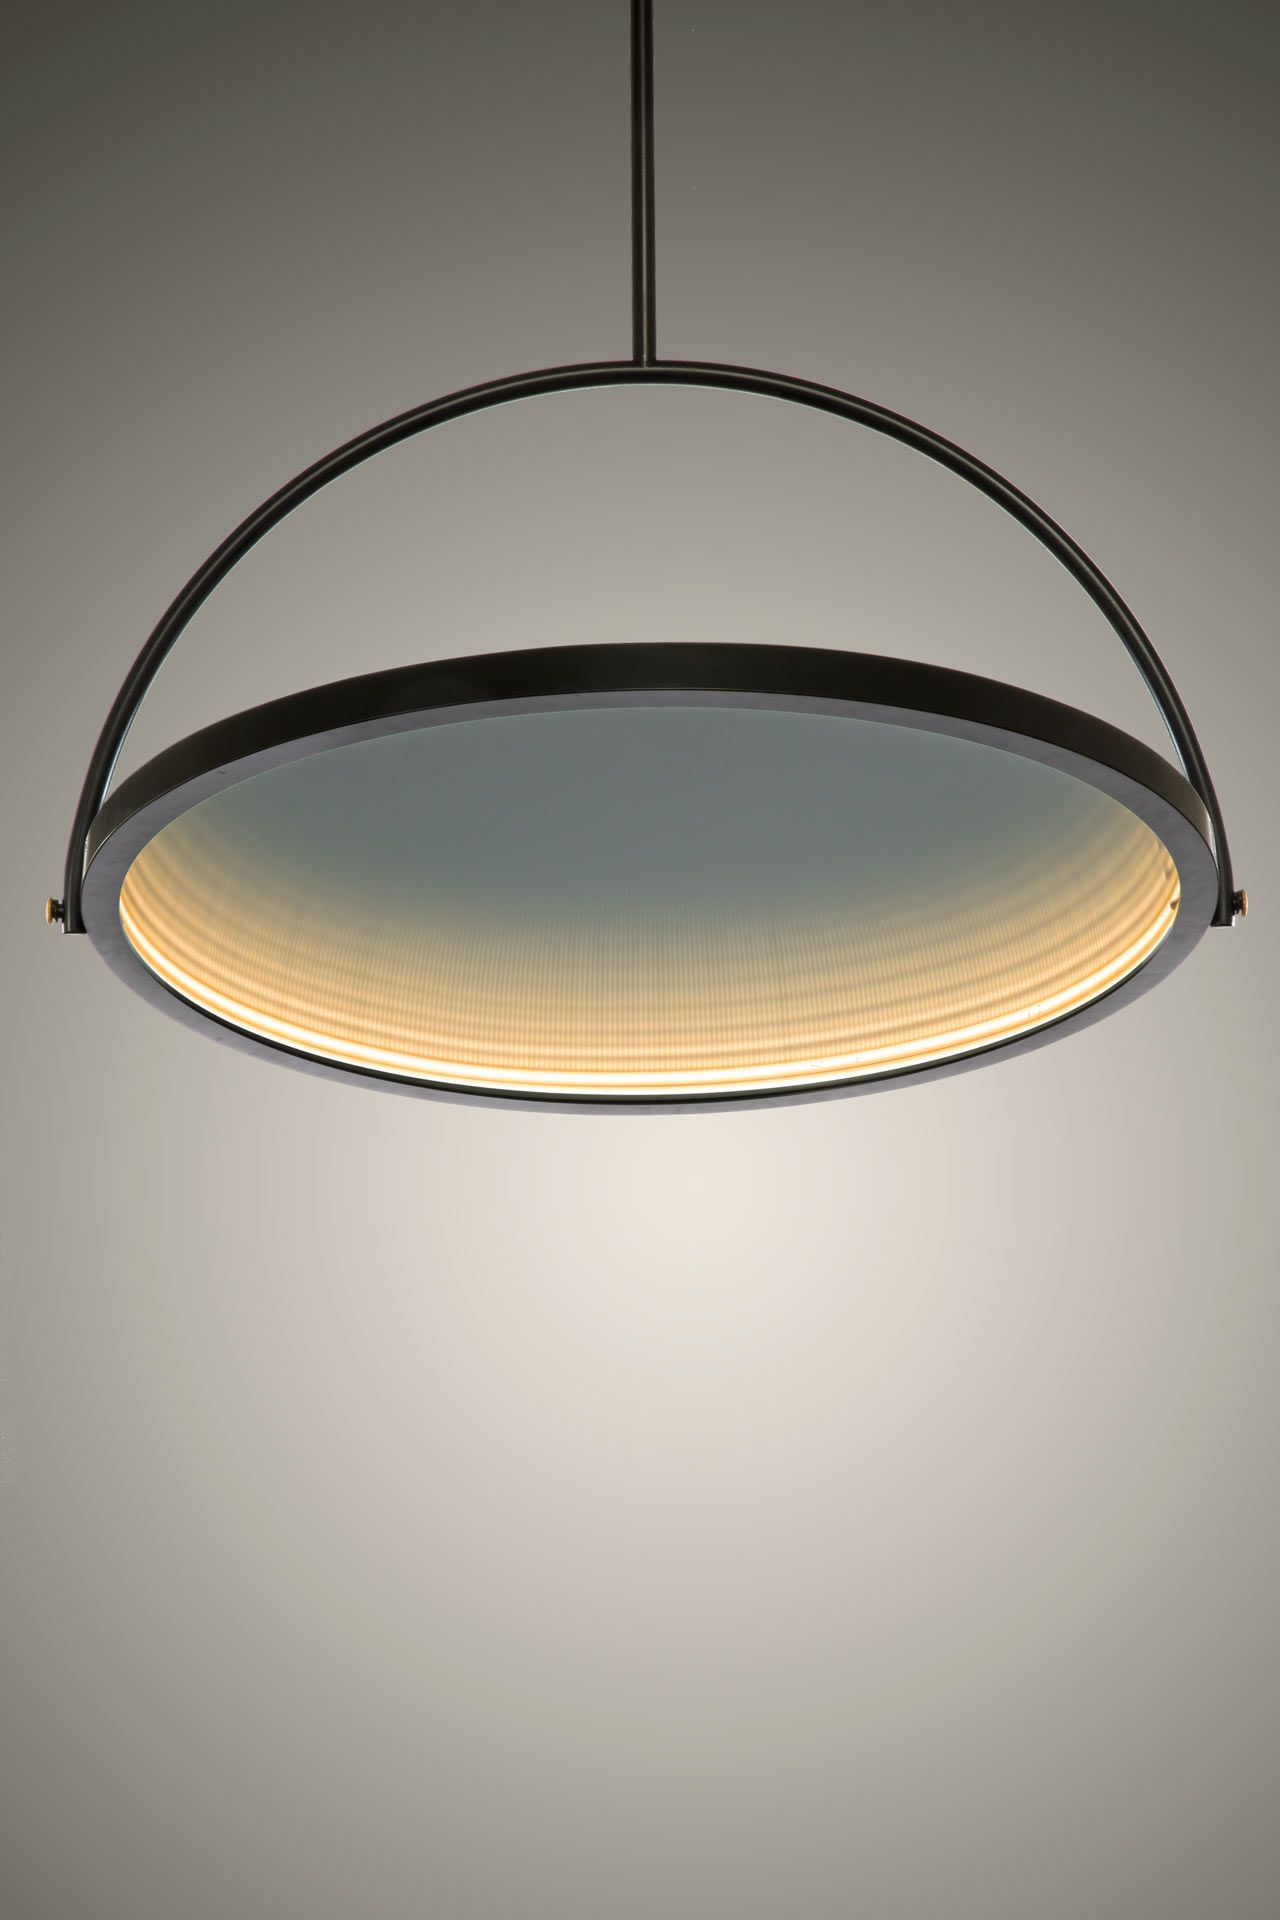 Oblio A Mirror Turned Lamp A Lamp Turned Mirror Interior Led Lights Lamp Suspension Lamp